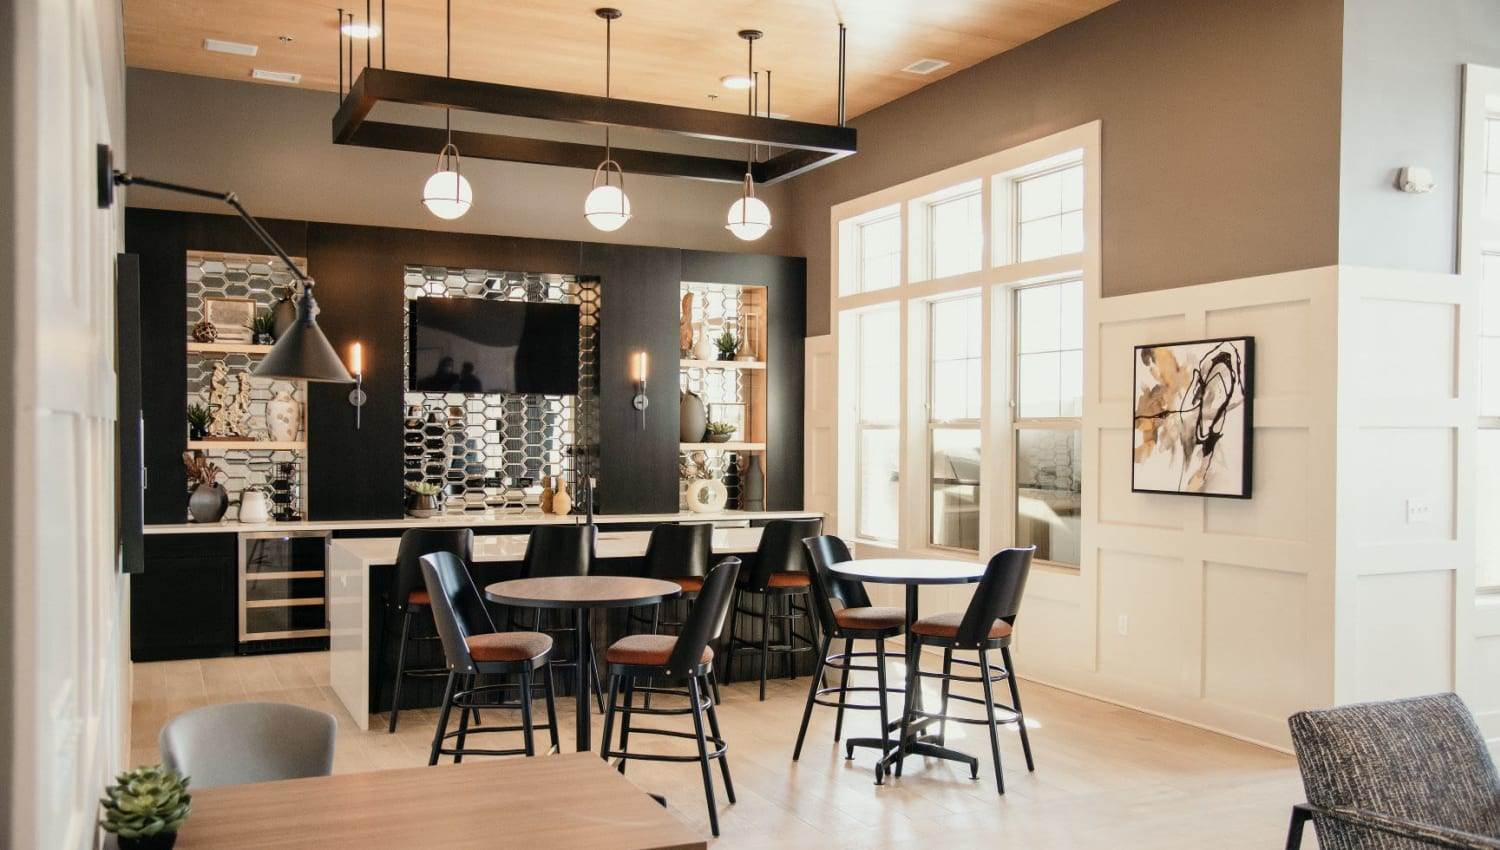 Club room kitchen and dining area at The 450 in Lombard, Illinois